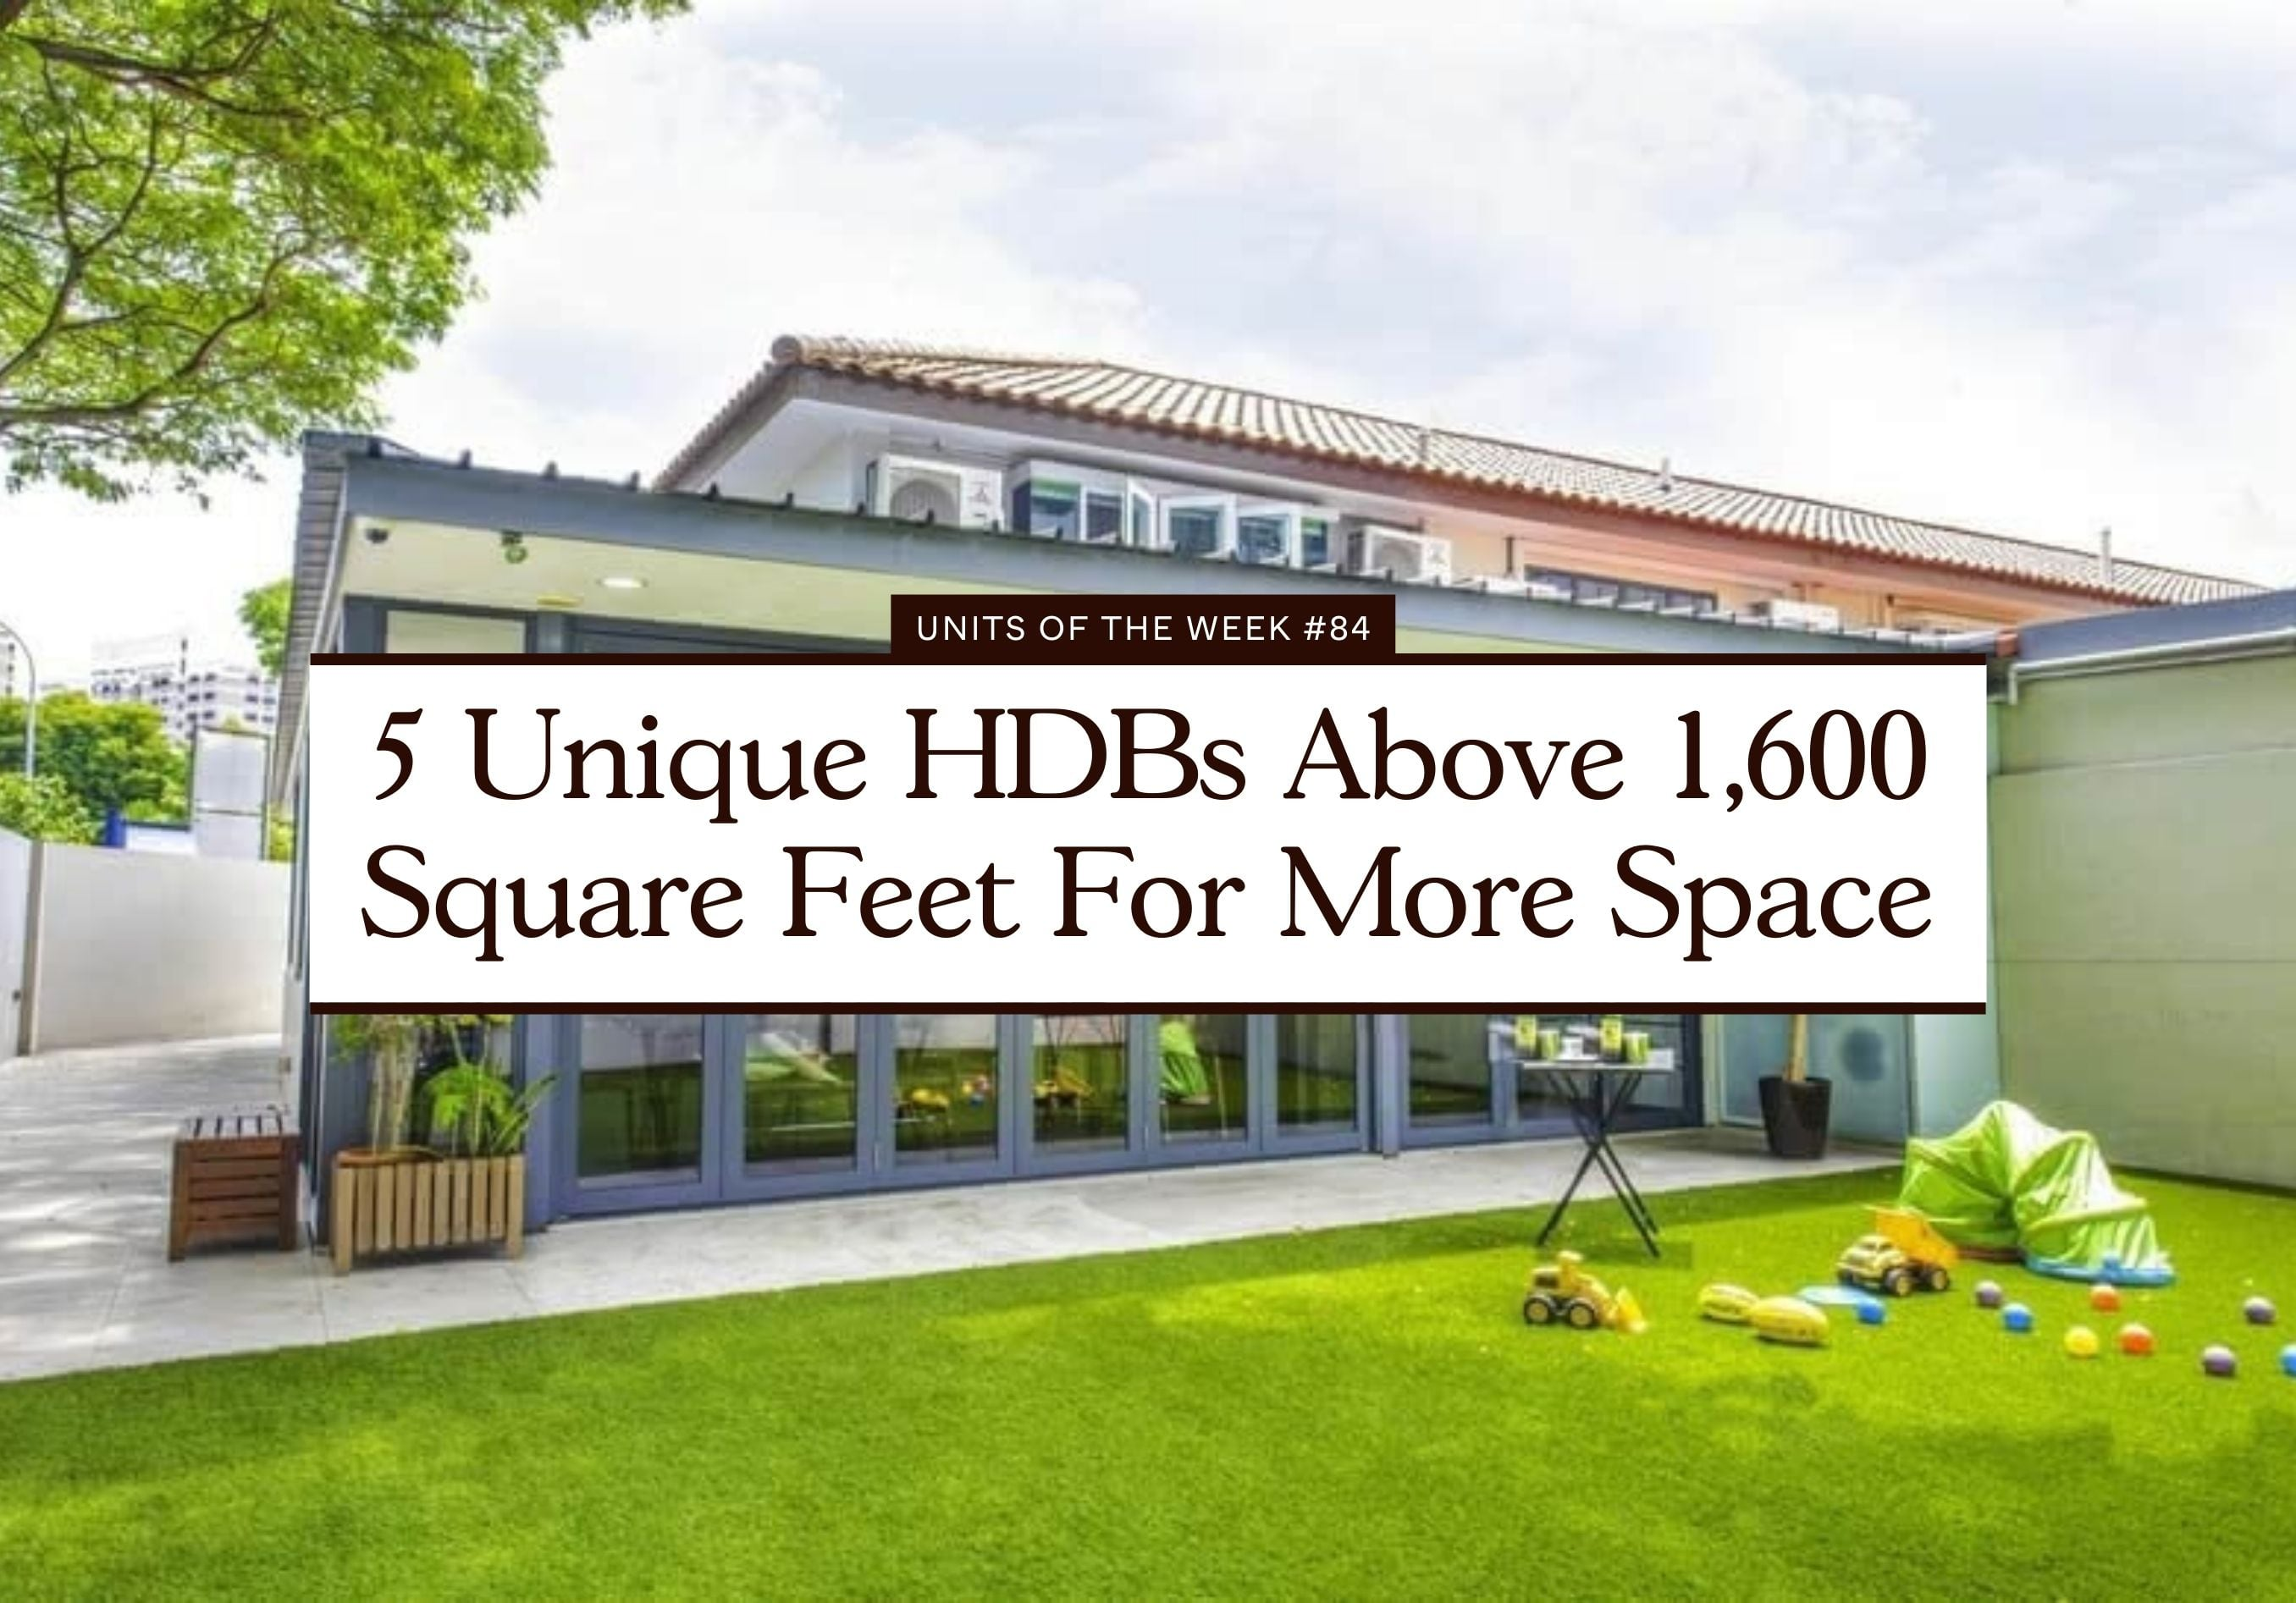 5 Unique HDBs Above 1600 Square Feet For More Space